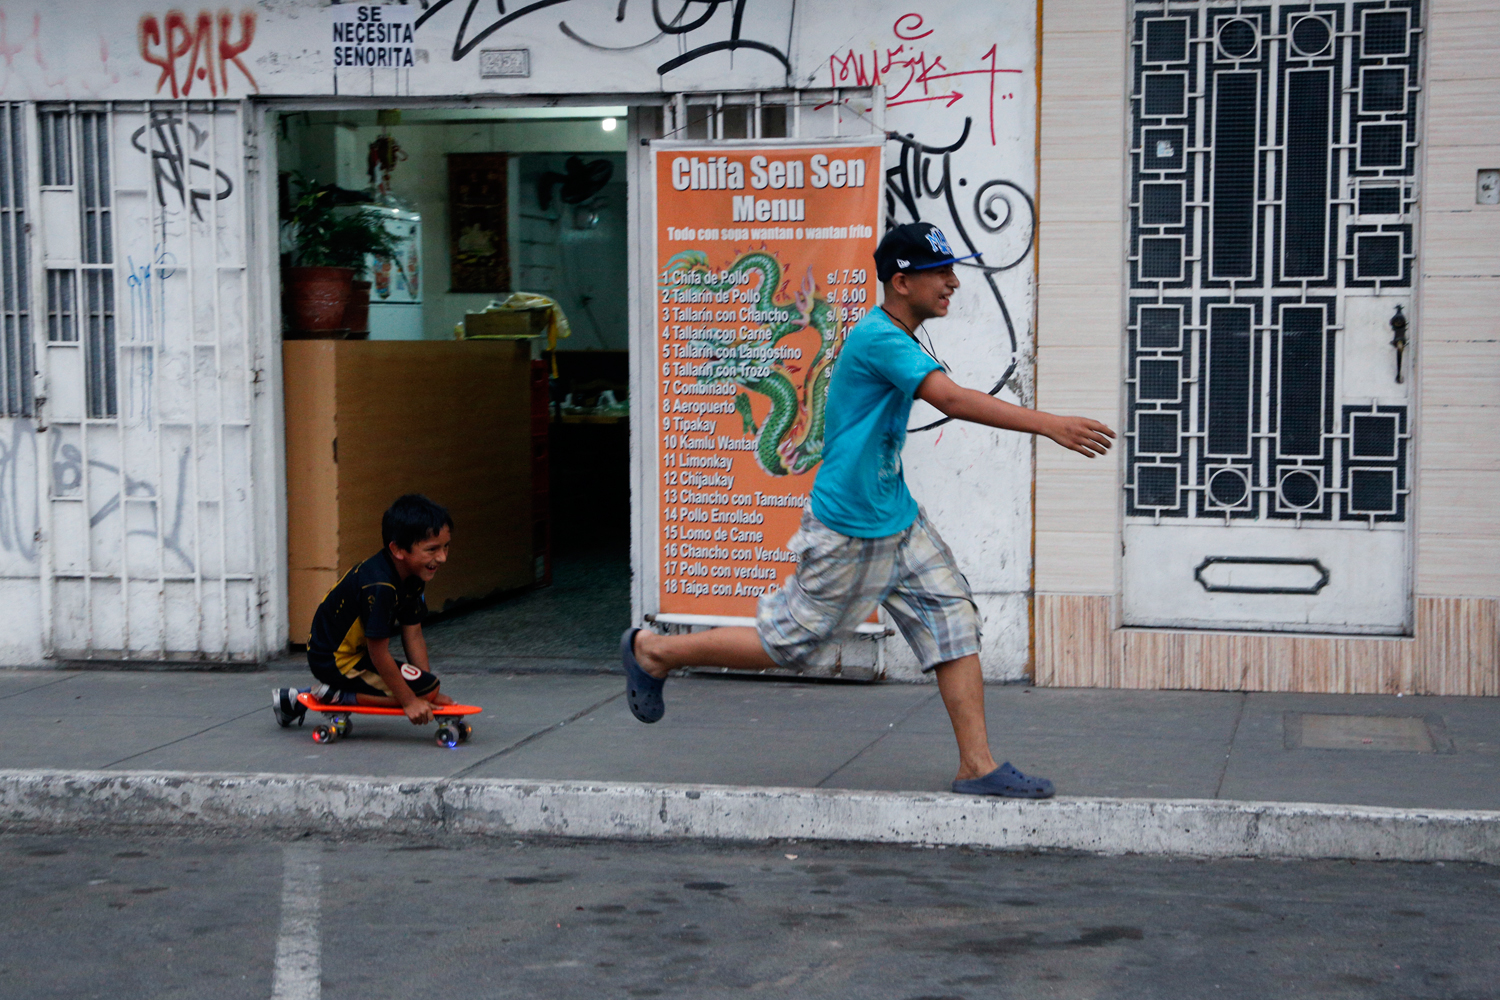 Two boys race along the pavement in front of a typical Chinese-Peruvian Chifa restaurant. The older one in his Crocs-style shoes is running from the younger one who is kneeling on a red plastic skateboard. Both are laughing heartily.